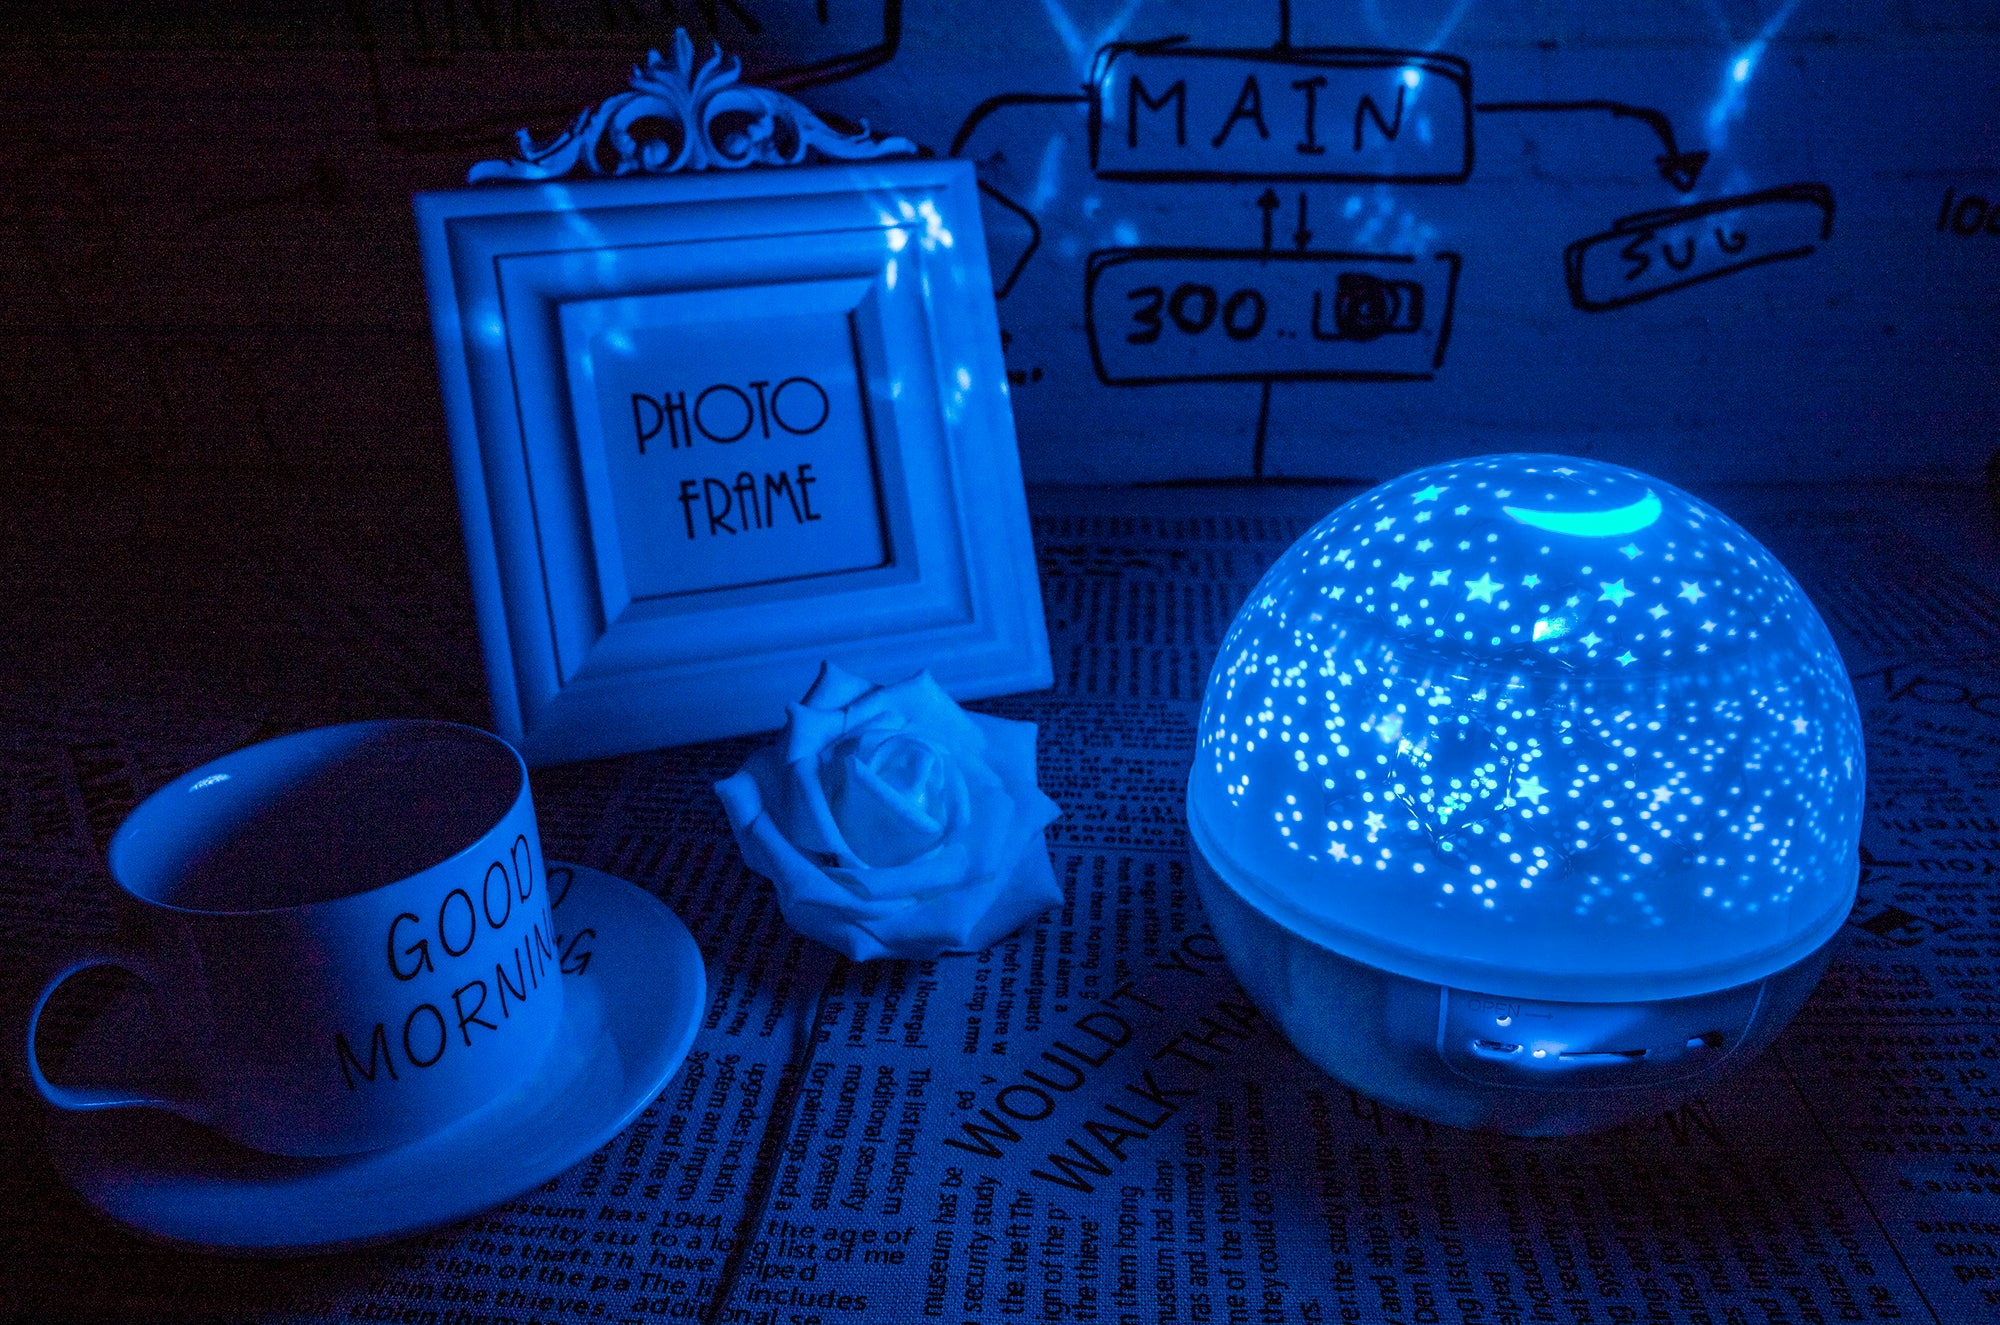 Fantasy Dream Light™ - Personalized Night Light Projector Lamp